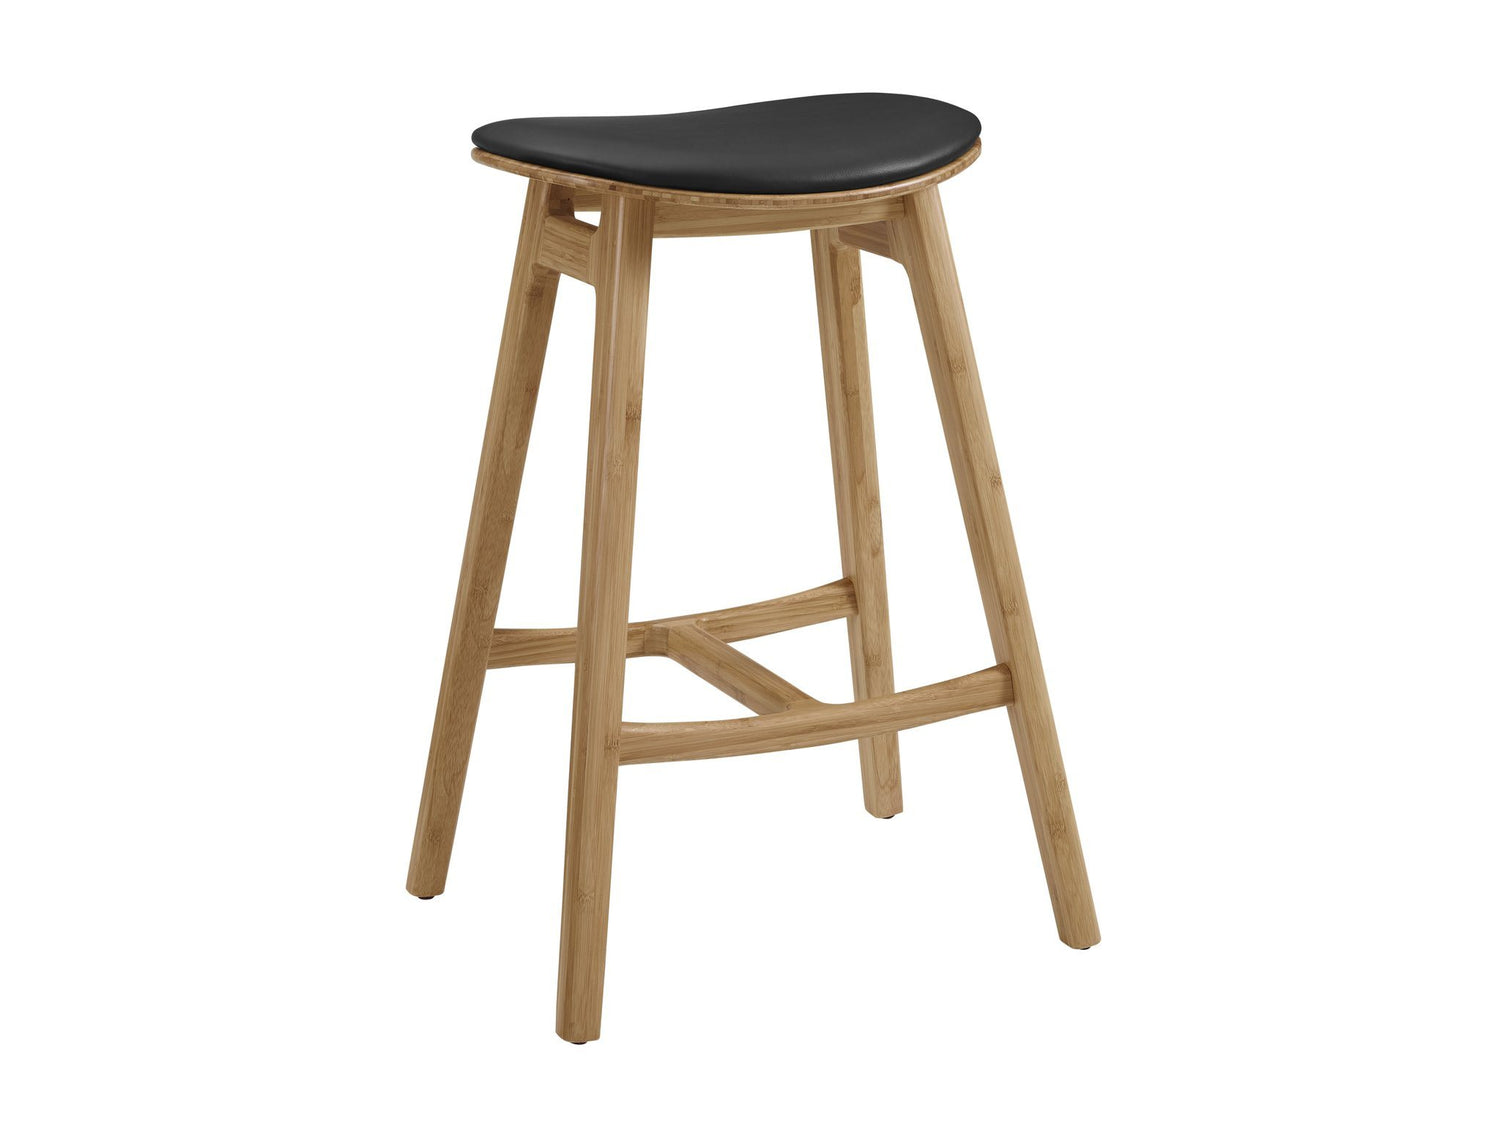 Greenington Skol Bar Height Stool with Leather Seat - Carmelized (Set of 2) Furniture Greenington